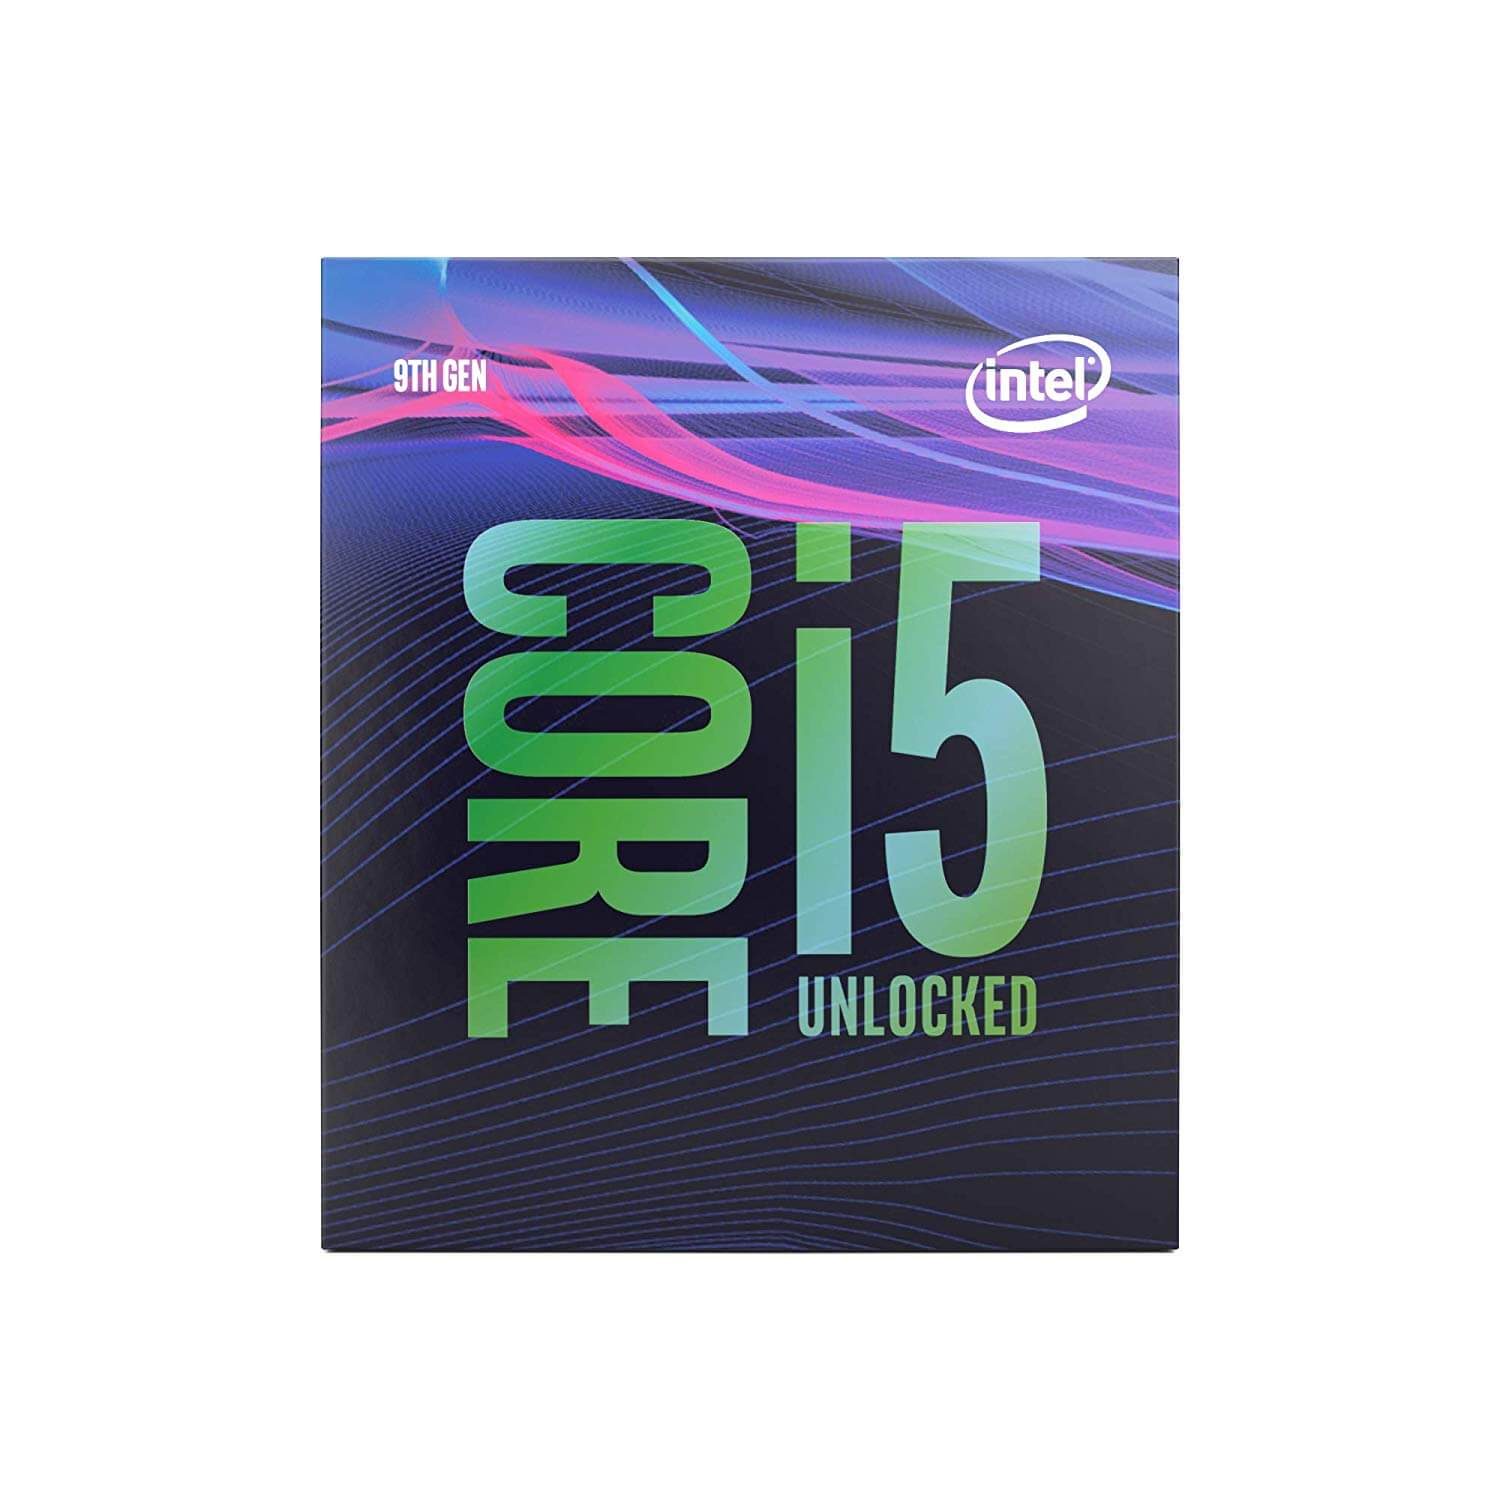 Intel Core i5-9600K Coffee Lake 3.7GHz (4.6GHz turbo) Six-Core